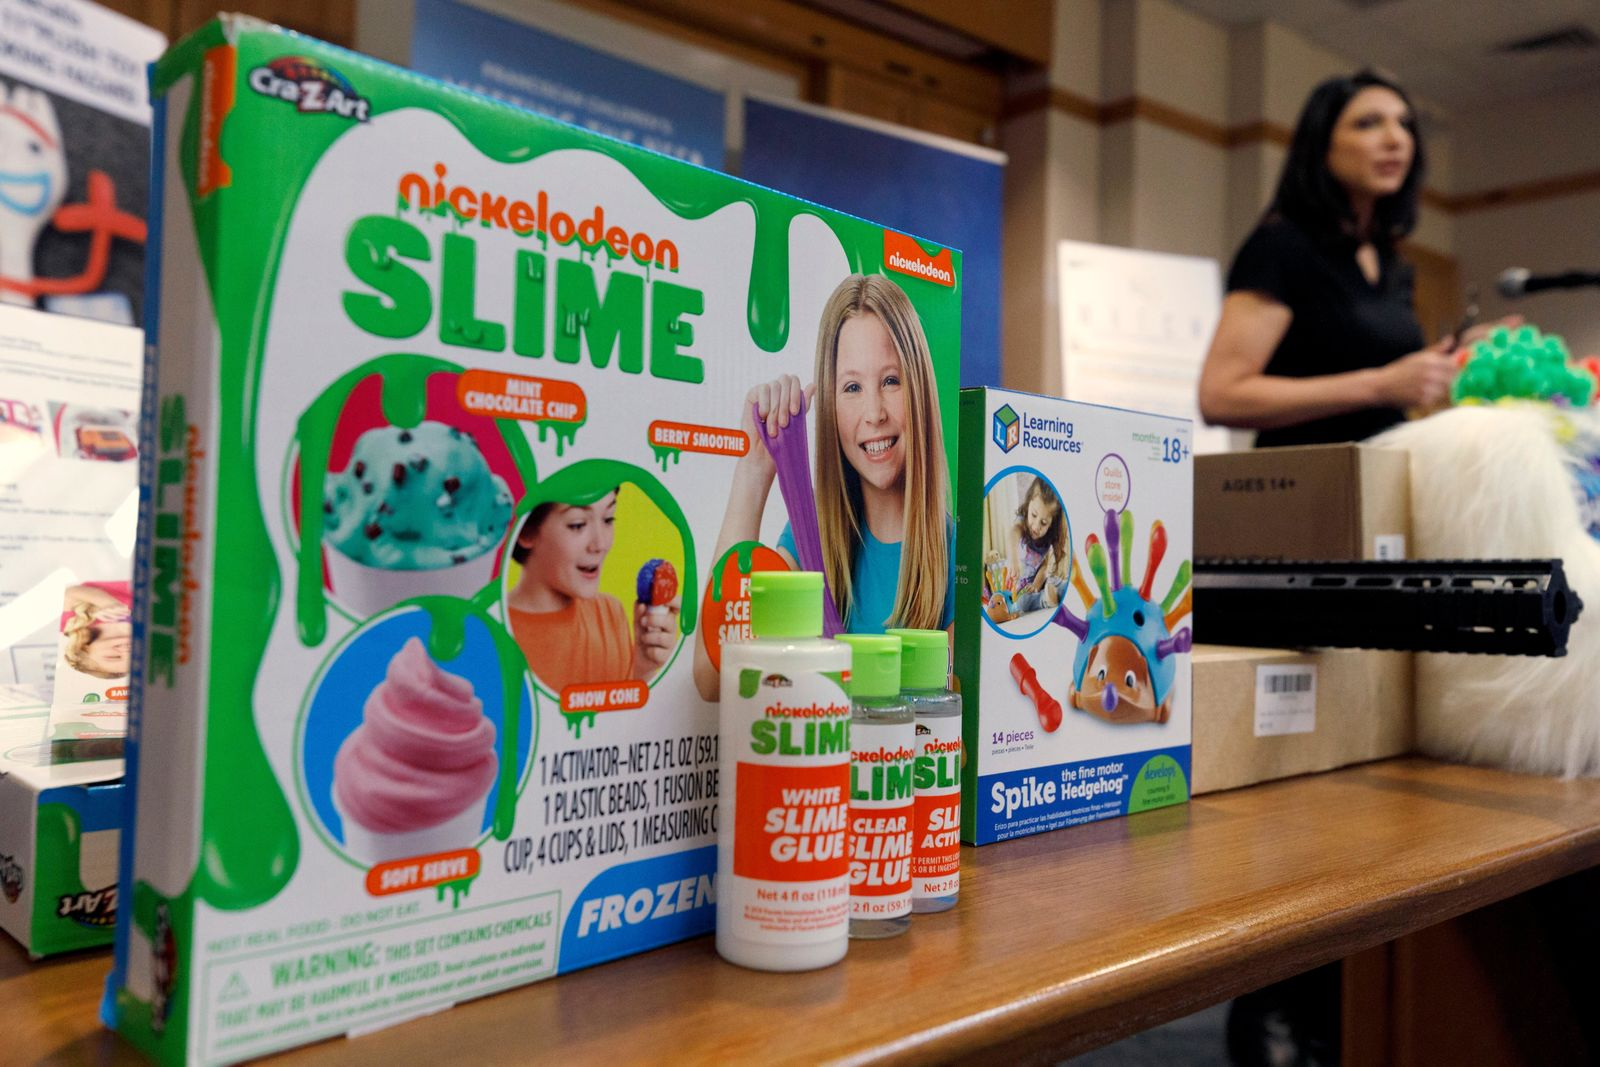 Joan Siff, president of World Against Toys Causing Harm, speaks behind an array of toys, including ice cream-scented Nickelodeon slime, during a news conference in Boston, Tuesday, Nov. 19, 2019. The organization notes that Nickelodeon's Frozen Treats Slime includes mint chocolate chip, berry smoothie, and snow cone-scented versions of the goo even as it warns the products are made of harmful chemicals and shouldn't be eaten. (AP Photo/Michael Dwyer)